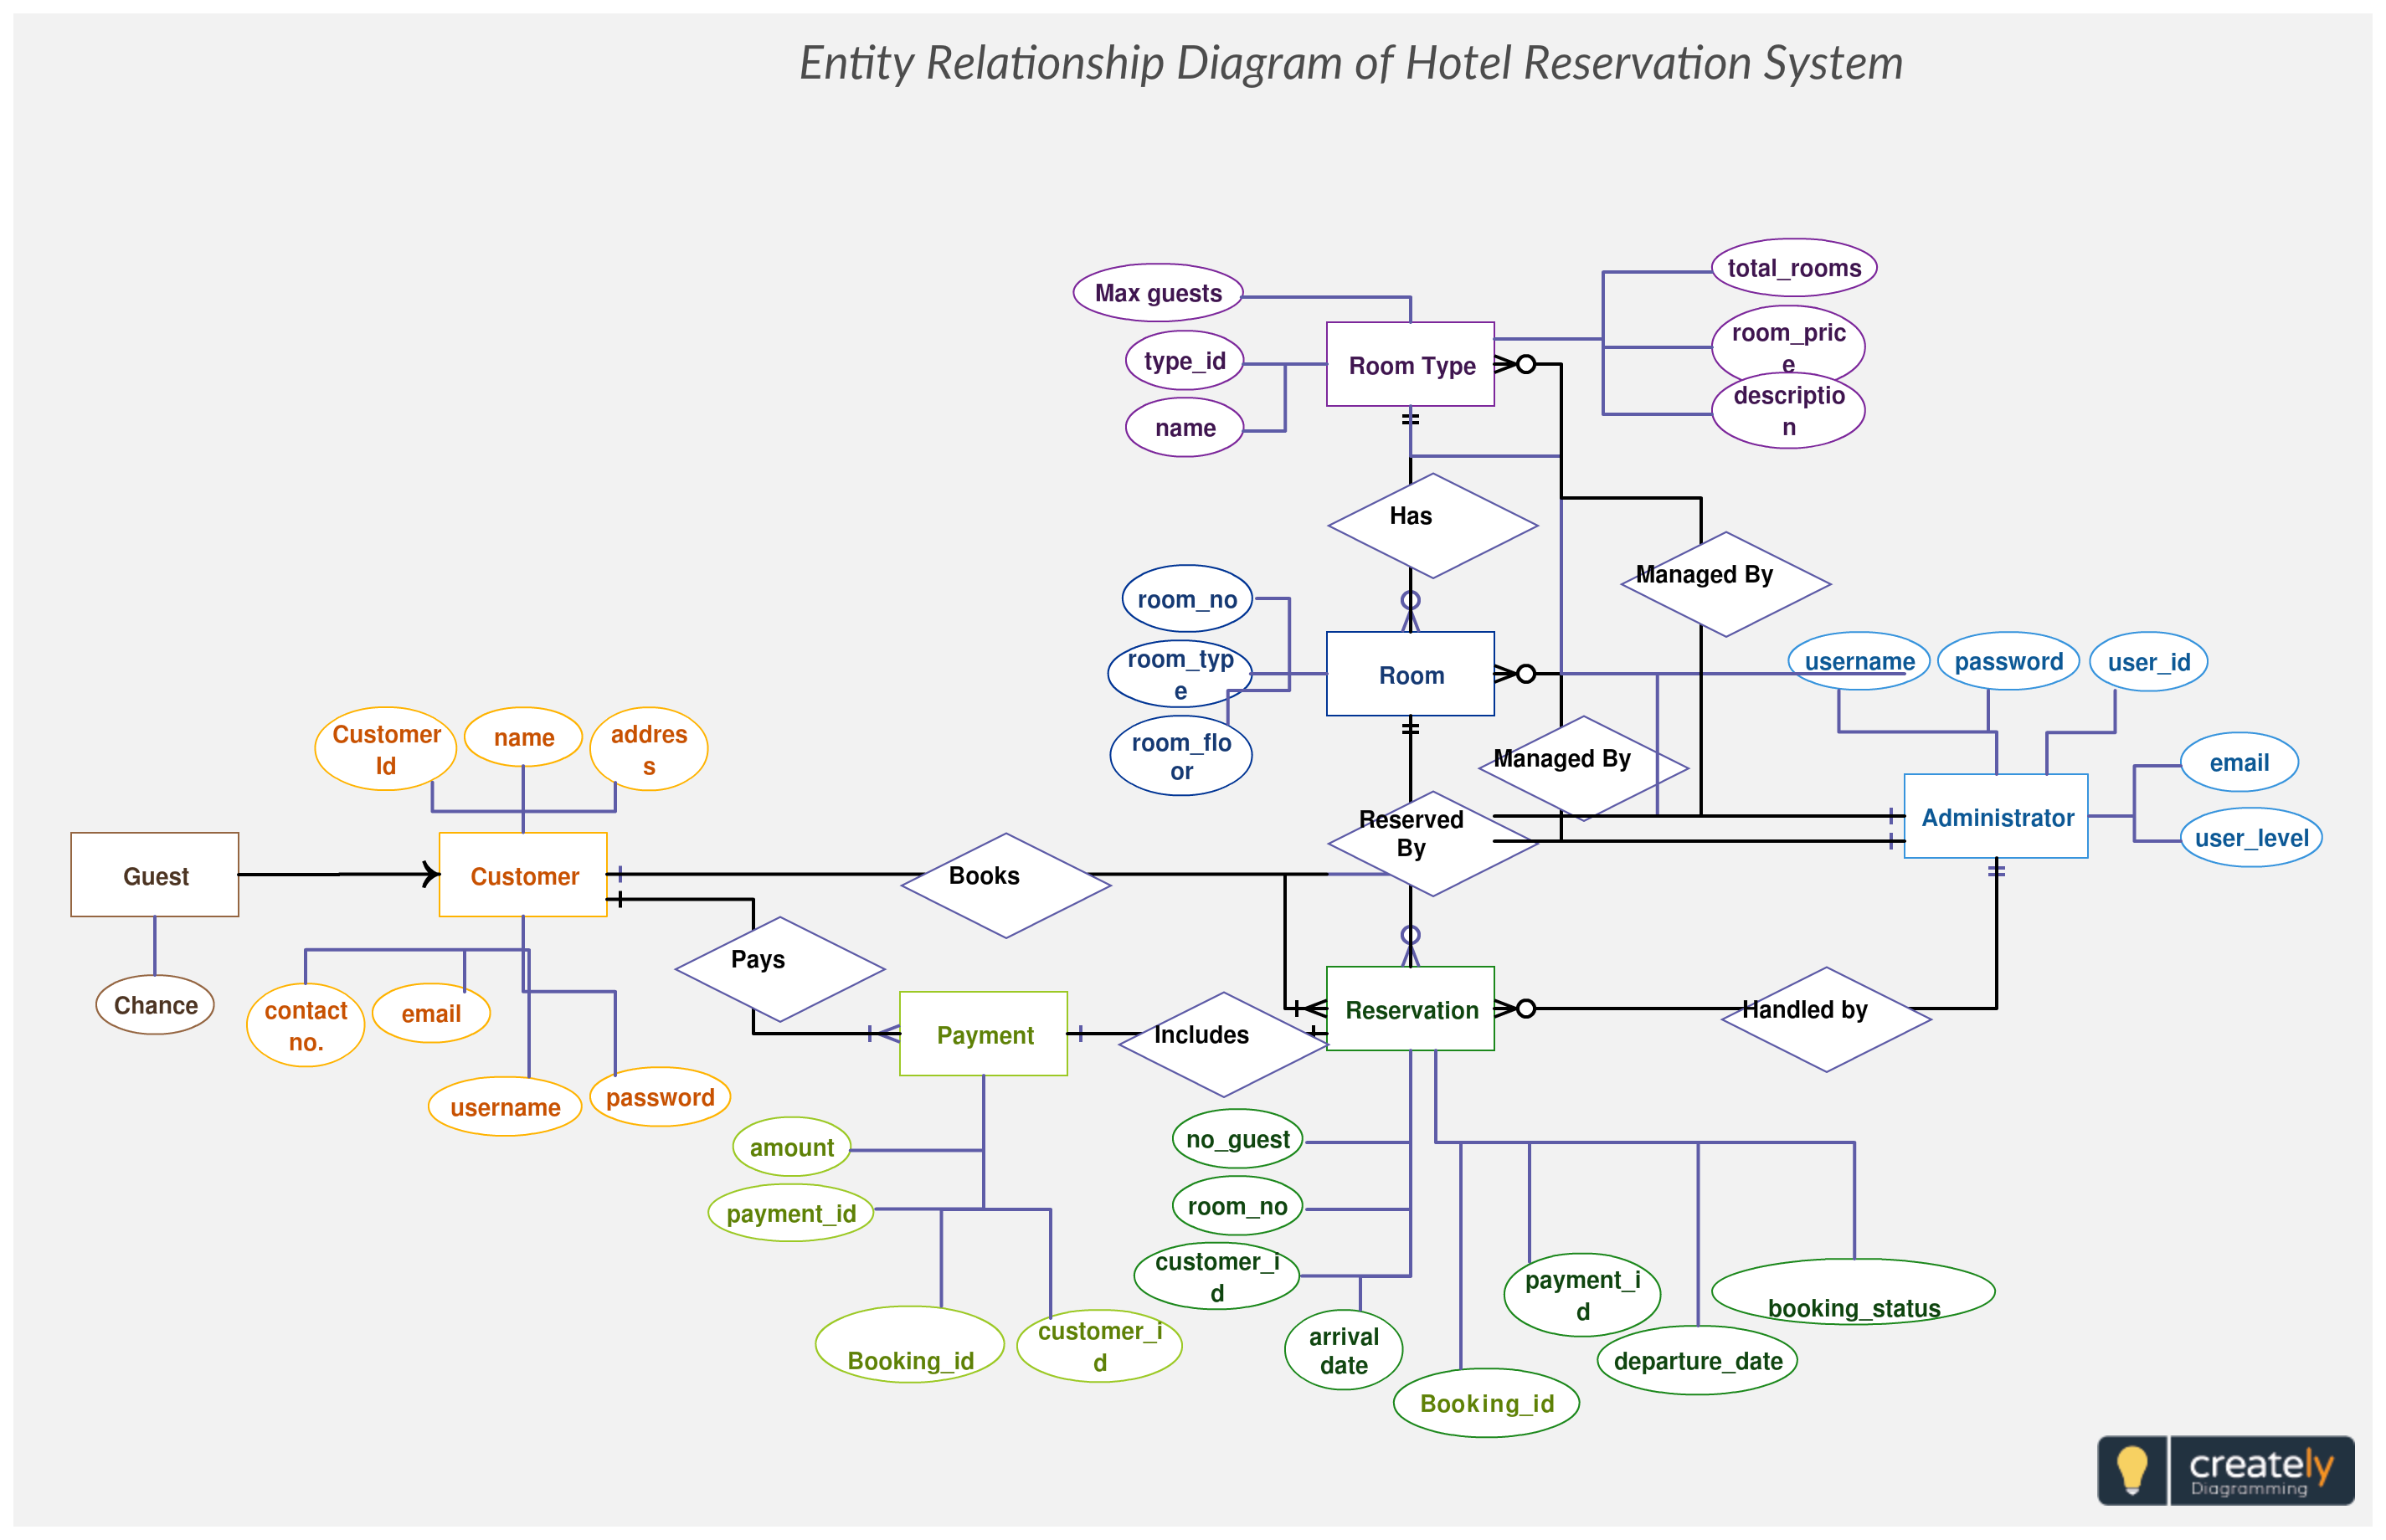 Hotel Reservation System Er Diagram Maps Out The Data Flow